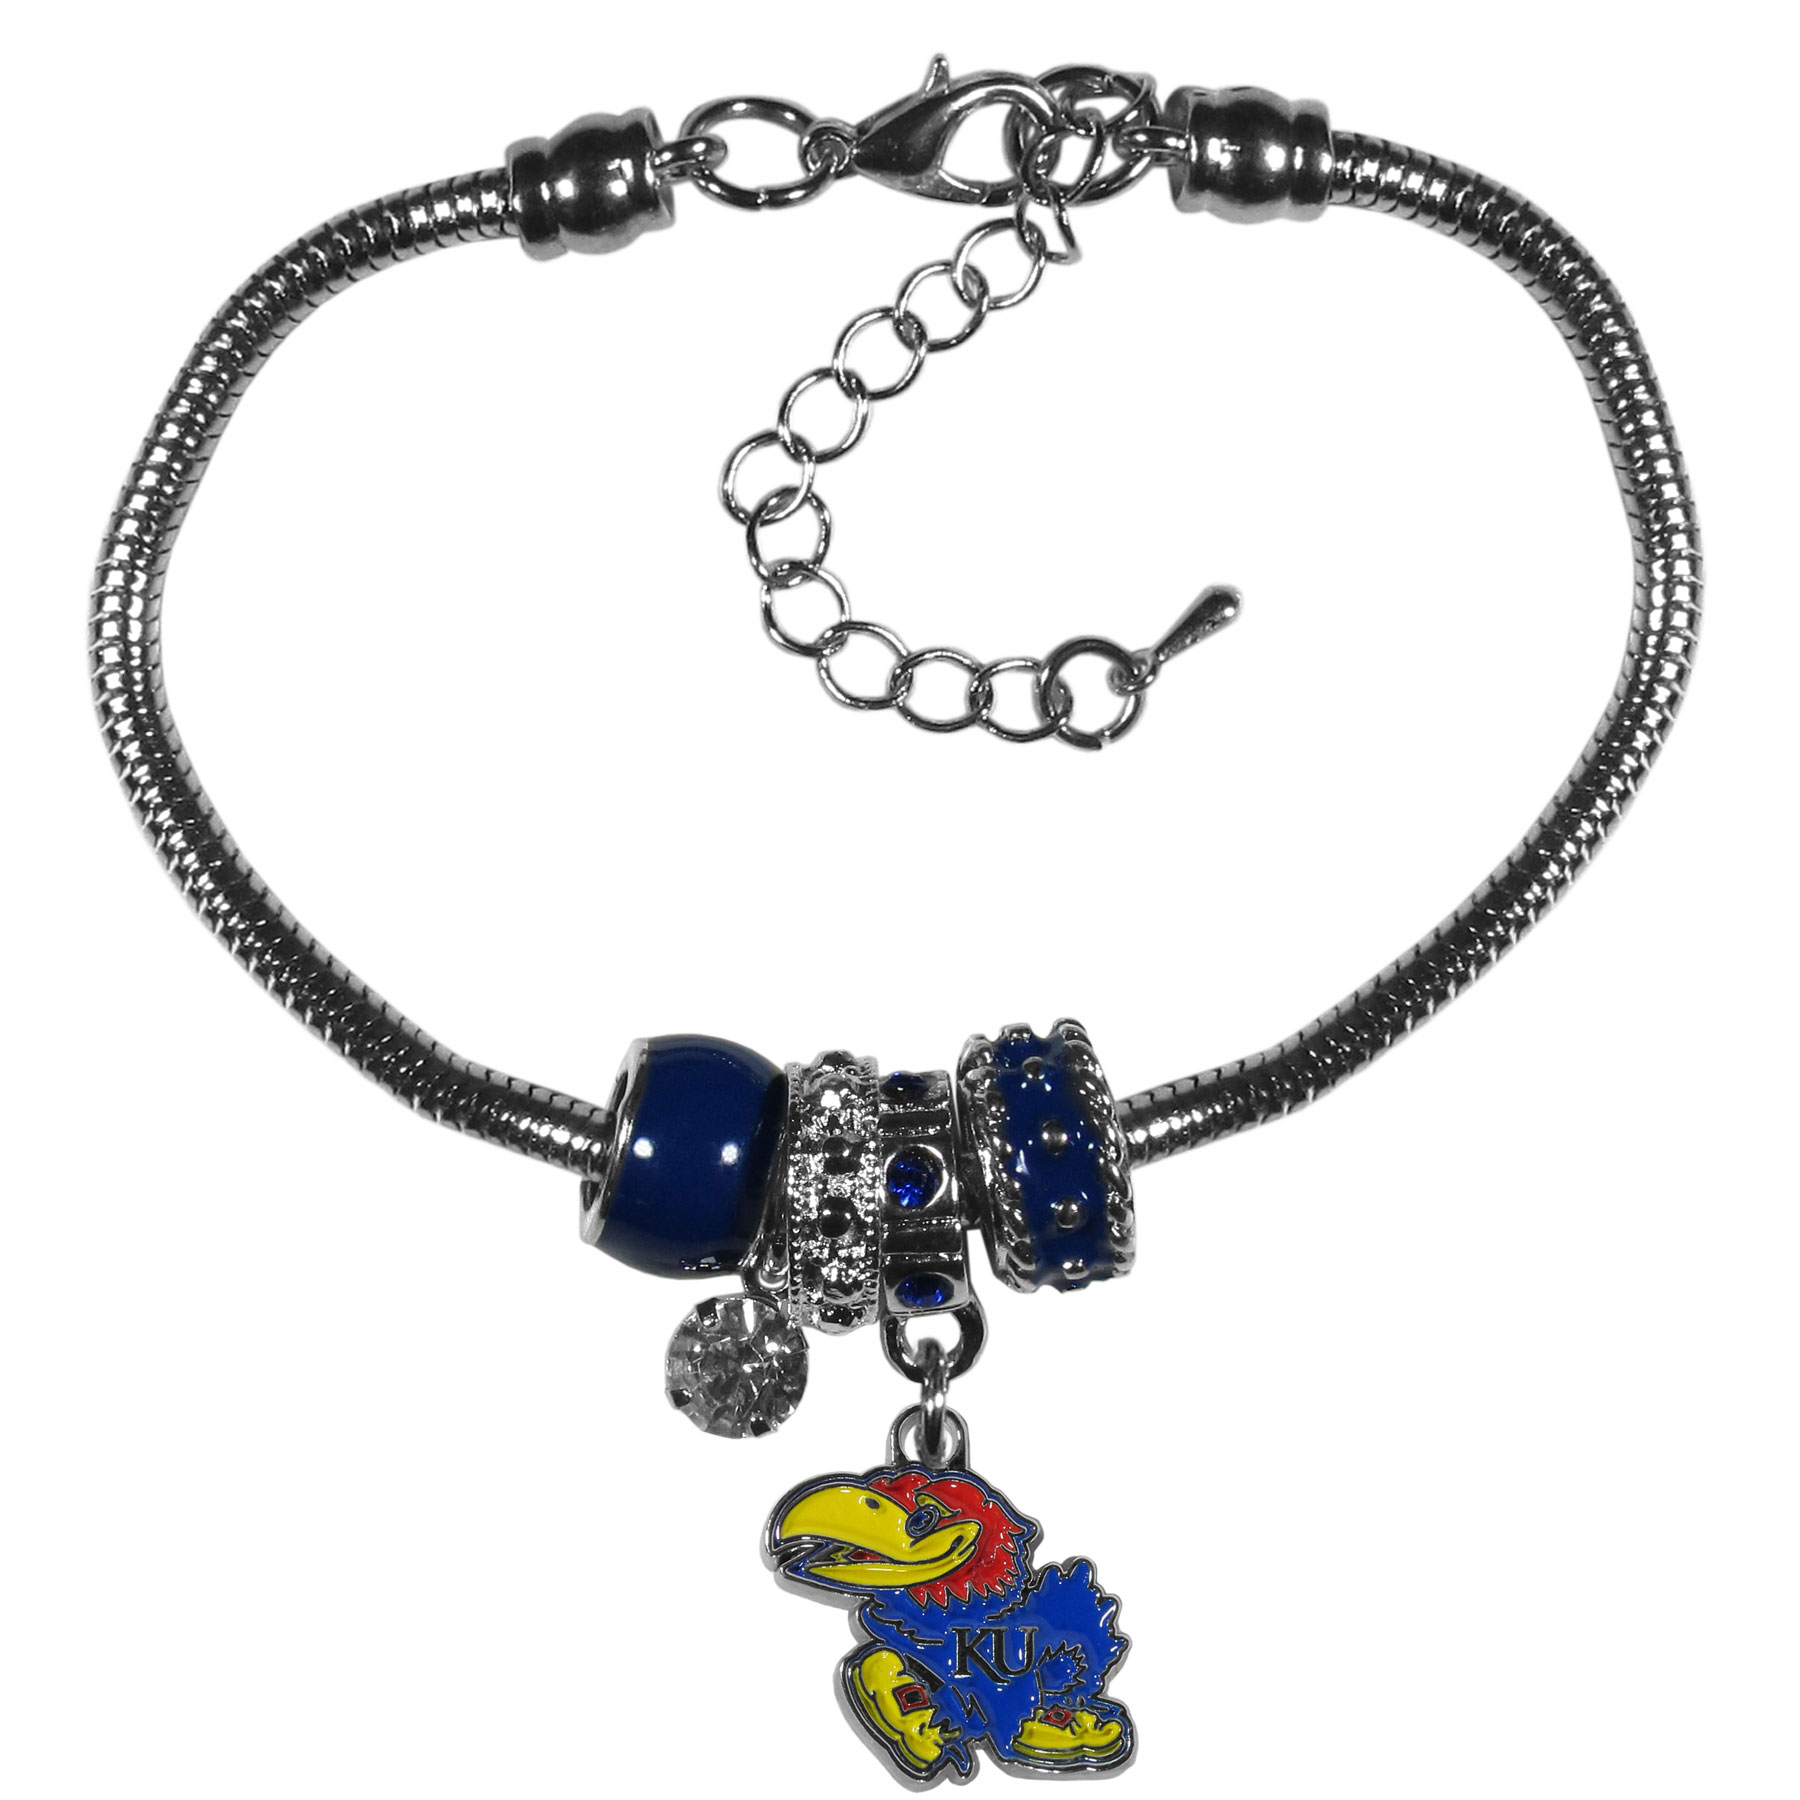 Kansas Jayhawks Euro Bead Bracelet - We have combined the wildly popular Euro style beads with your favorite team to create our  Kansas Jayhawks bead bracelet. The 7.5 inch snake chain with 2 inch extender features 4 Euro beads with enameled team colors and rhinestone accents with a high polish, nickel free charm and rhinestone charm. Perfect way to show off your team pride.